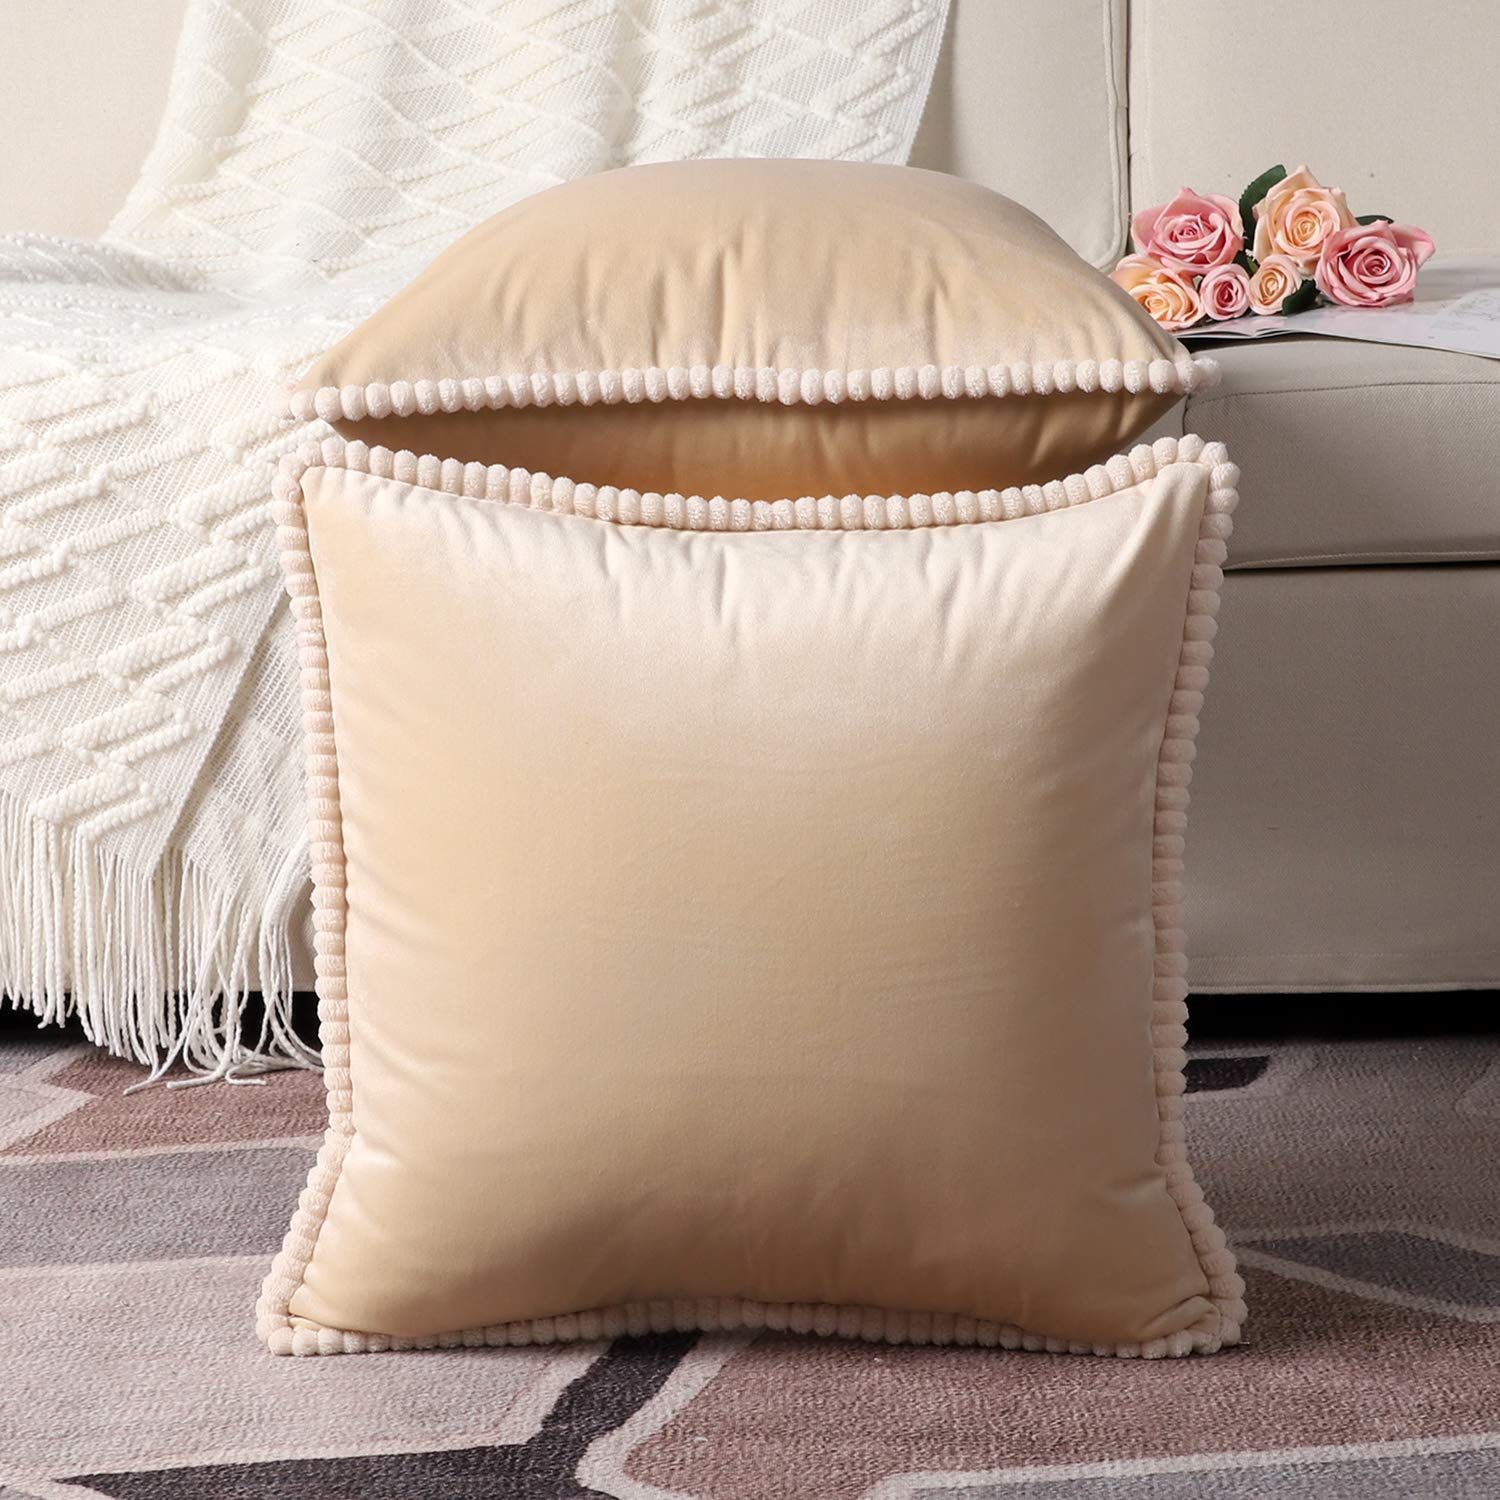 Buy Madizz Pack Of 2 Super Soft Velvet Throw Pillow Covers With Corduroy Fringe Decorative Soft Plush Cushion Case Pillow Shell For Sofa Bedroom Square Beige 20x20 Inch Online At Low Prices